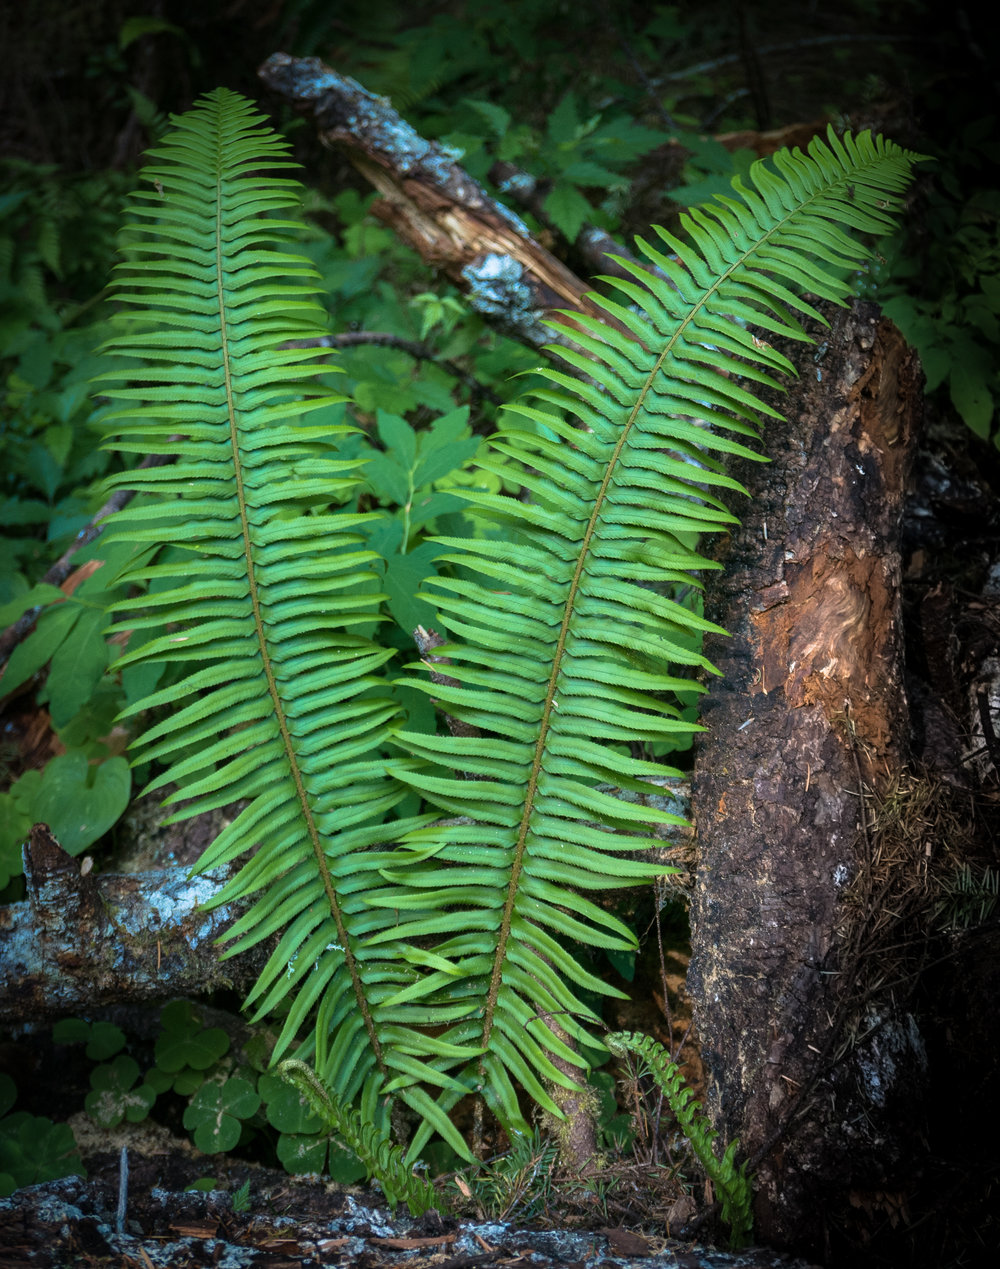 Ferns cover the forest floor like bear clover in the Sierra, only ferns are prettier.